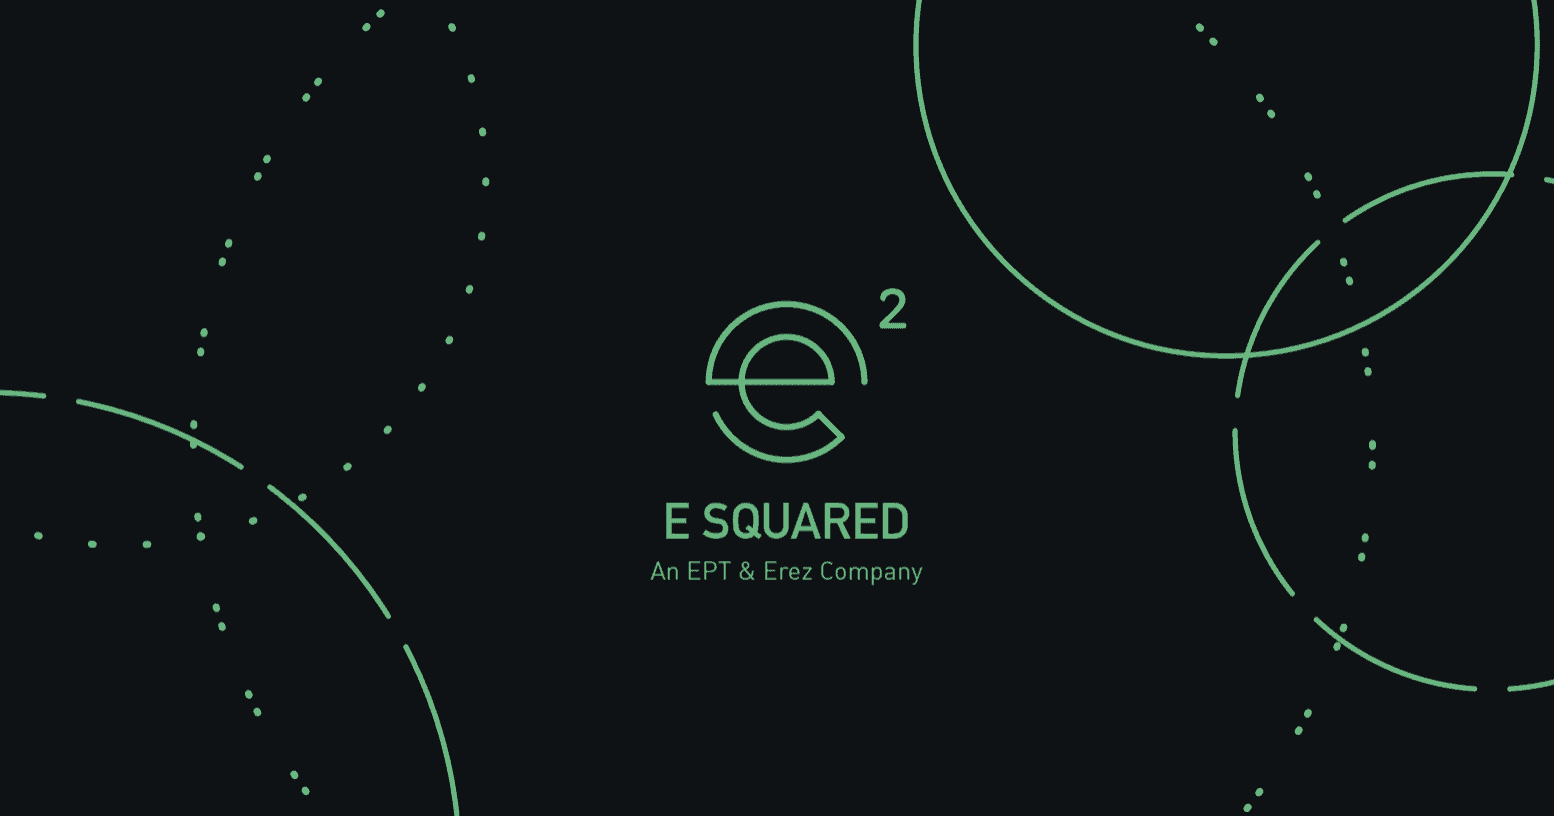 Introducing E-Squared